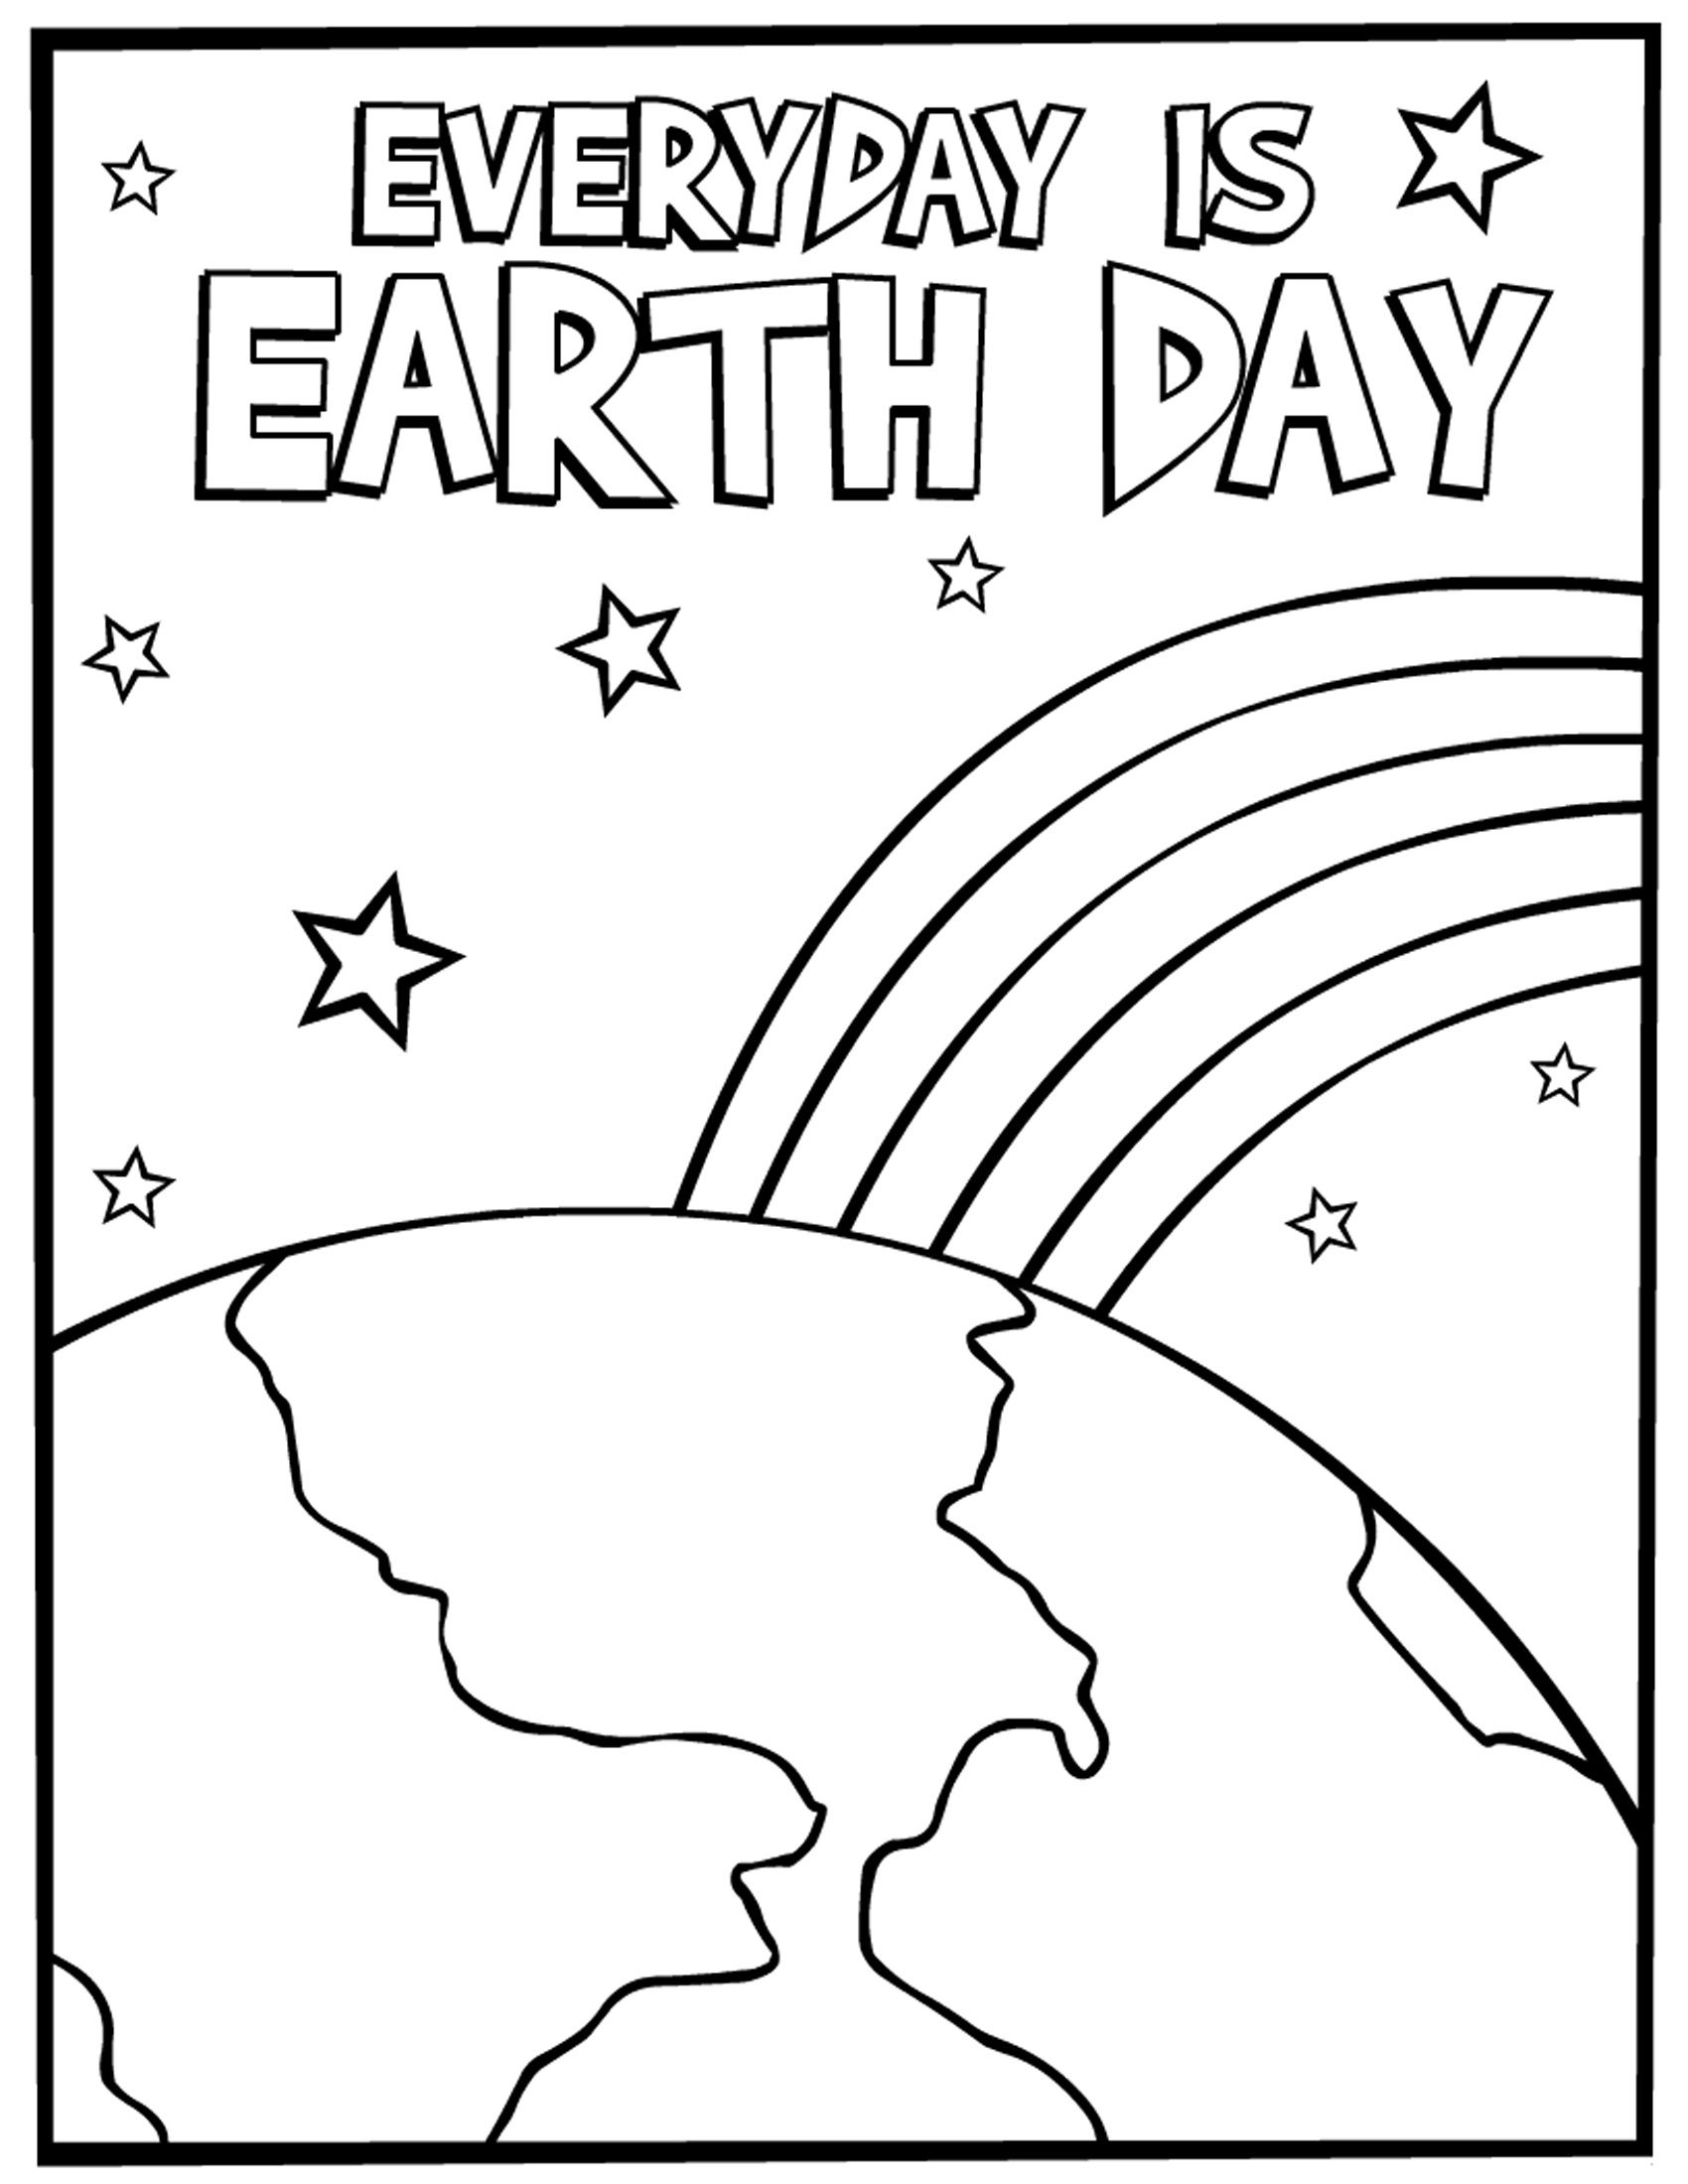 Earth Day Coloring Pages Free Download